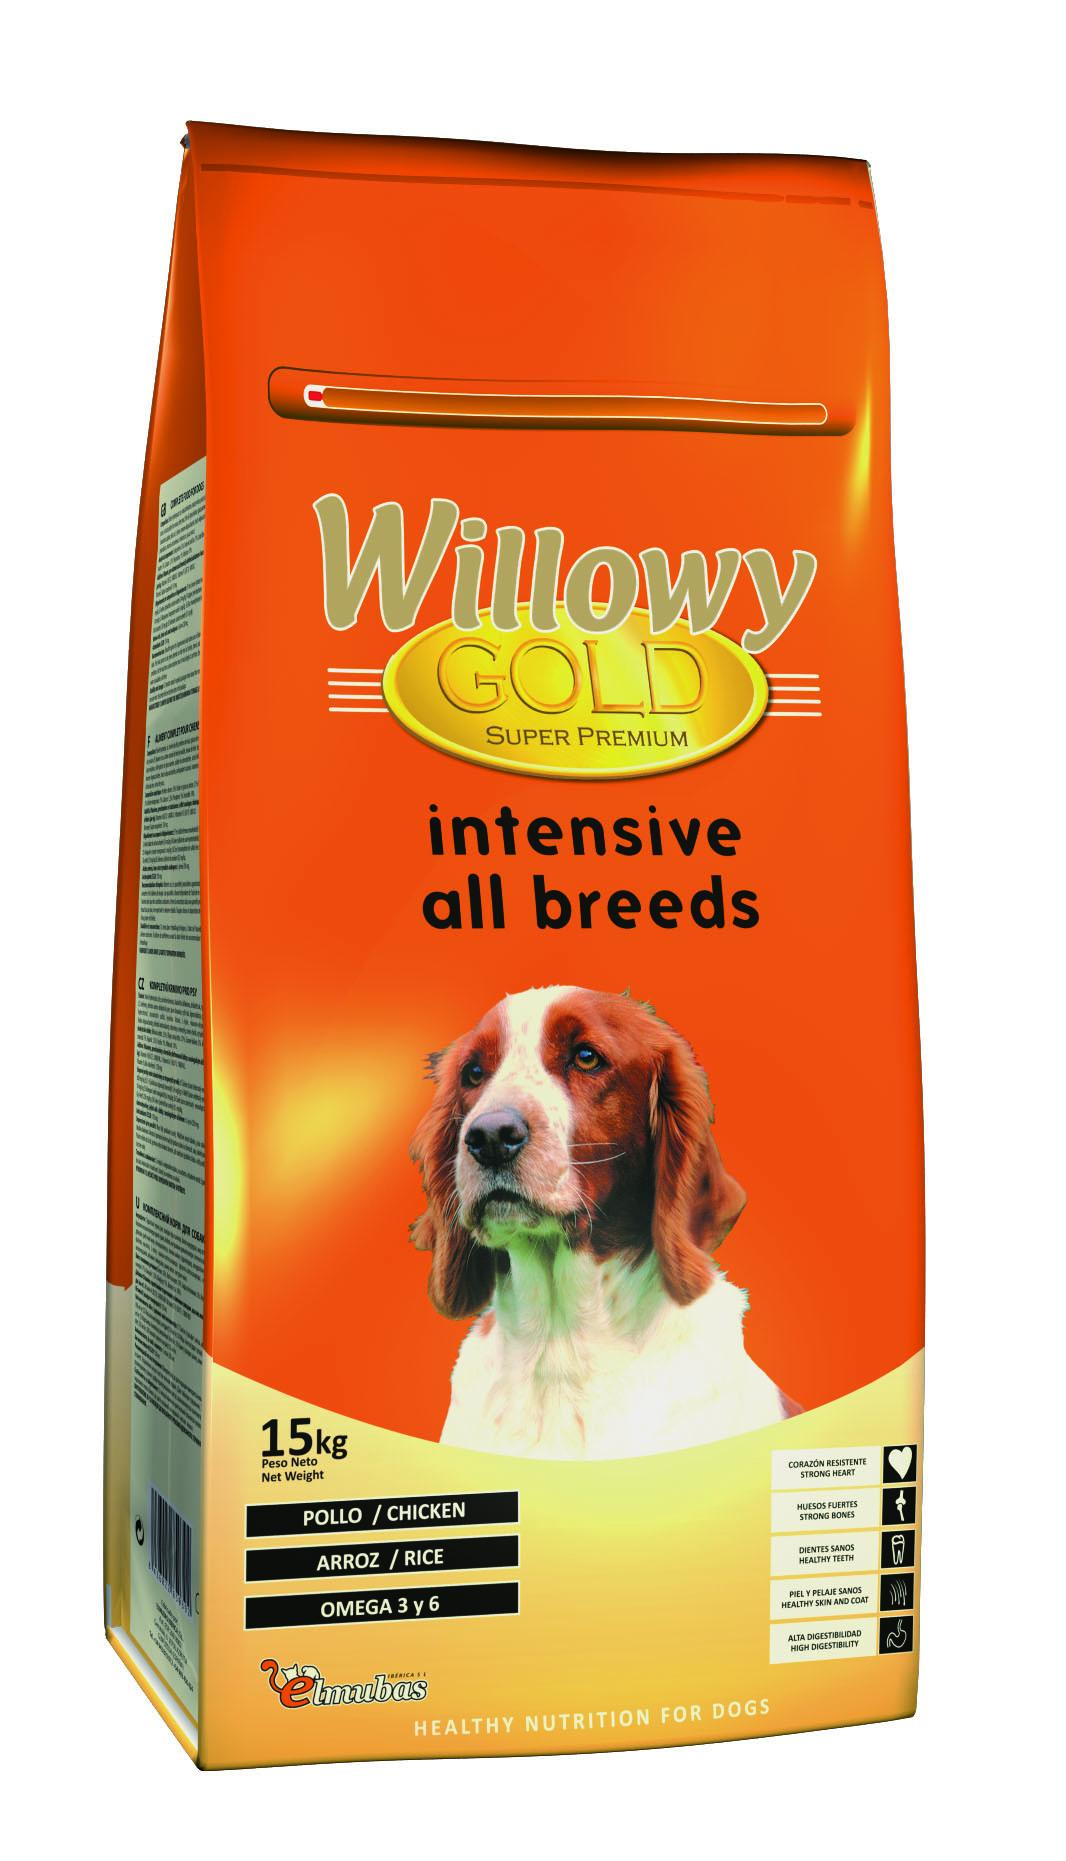 Willowy Gold INTENSIVE all breeds